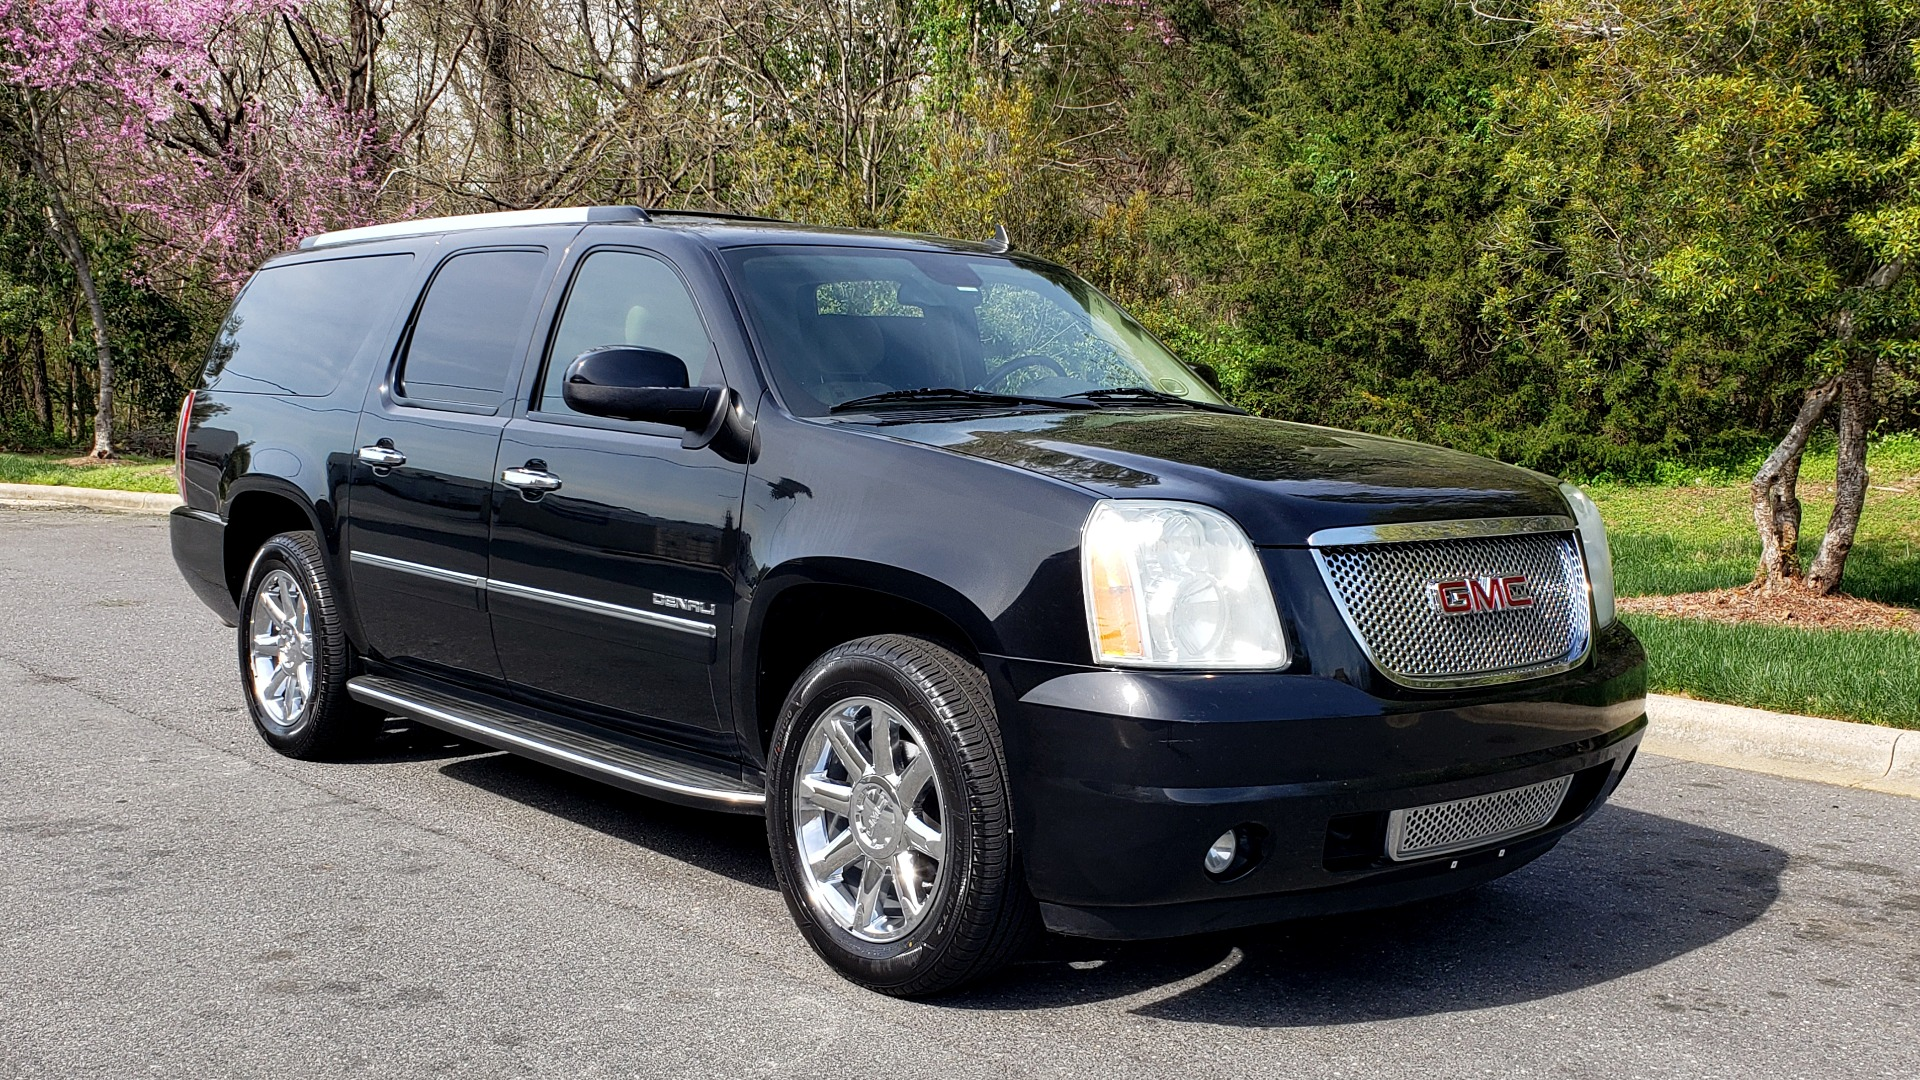 Used 2012 GMC YUKON XL DENALI AWD / NAV / SUN & ENT PKG / SUNROOF / REARVIEW / 3-ROW for sale Sold at Formula Imports in Charlotte NC 28227 4